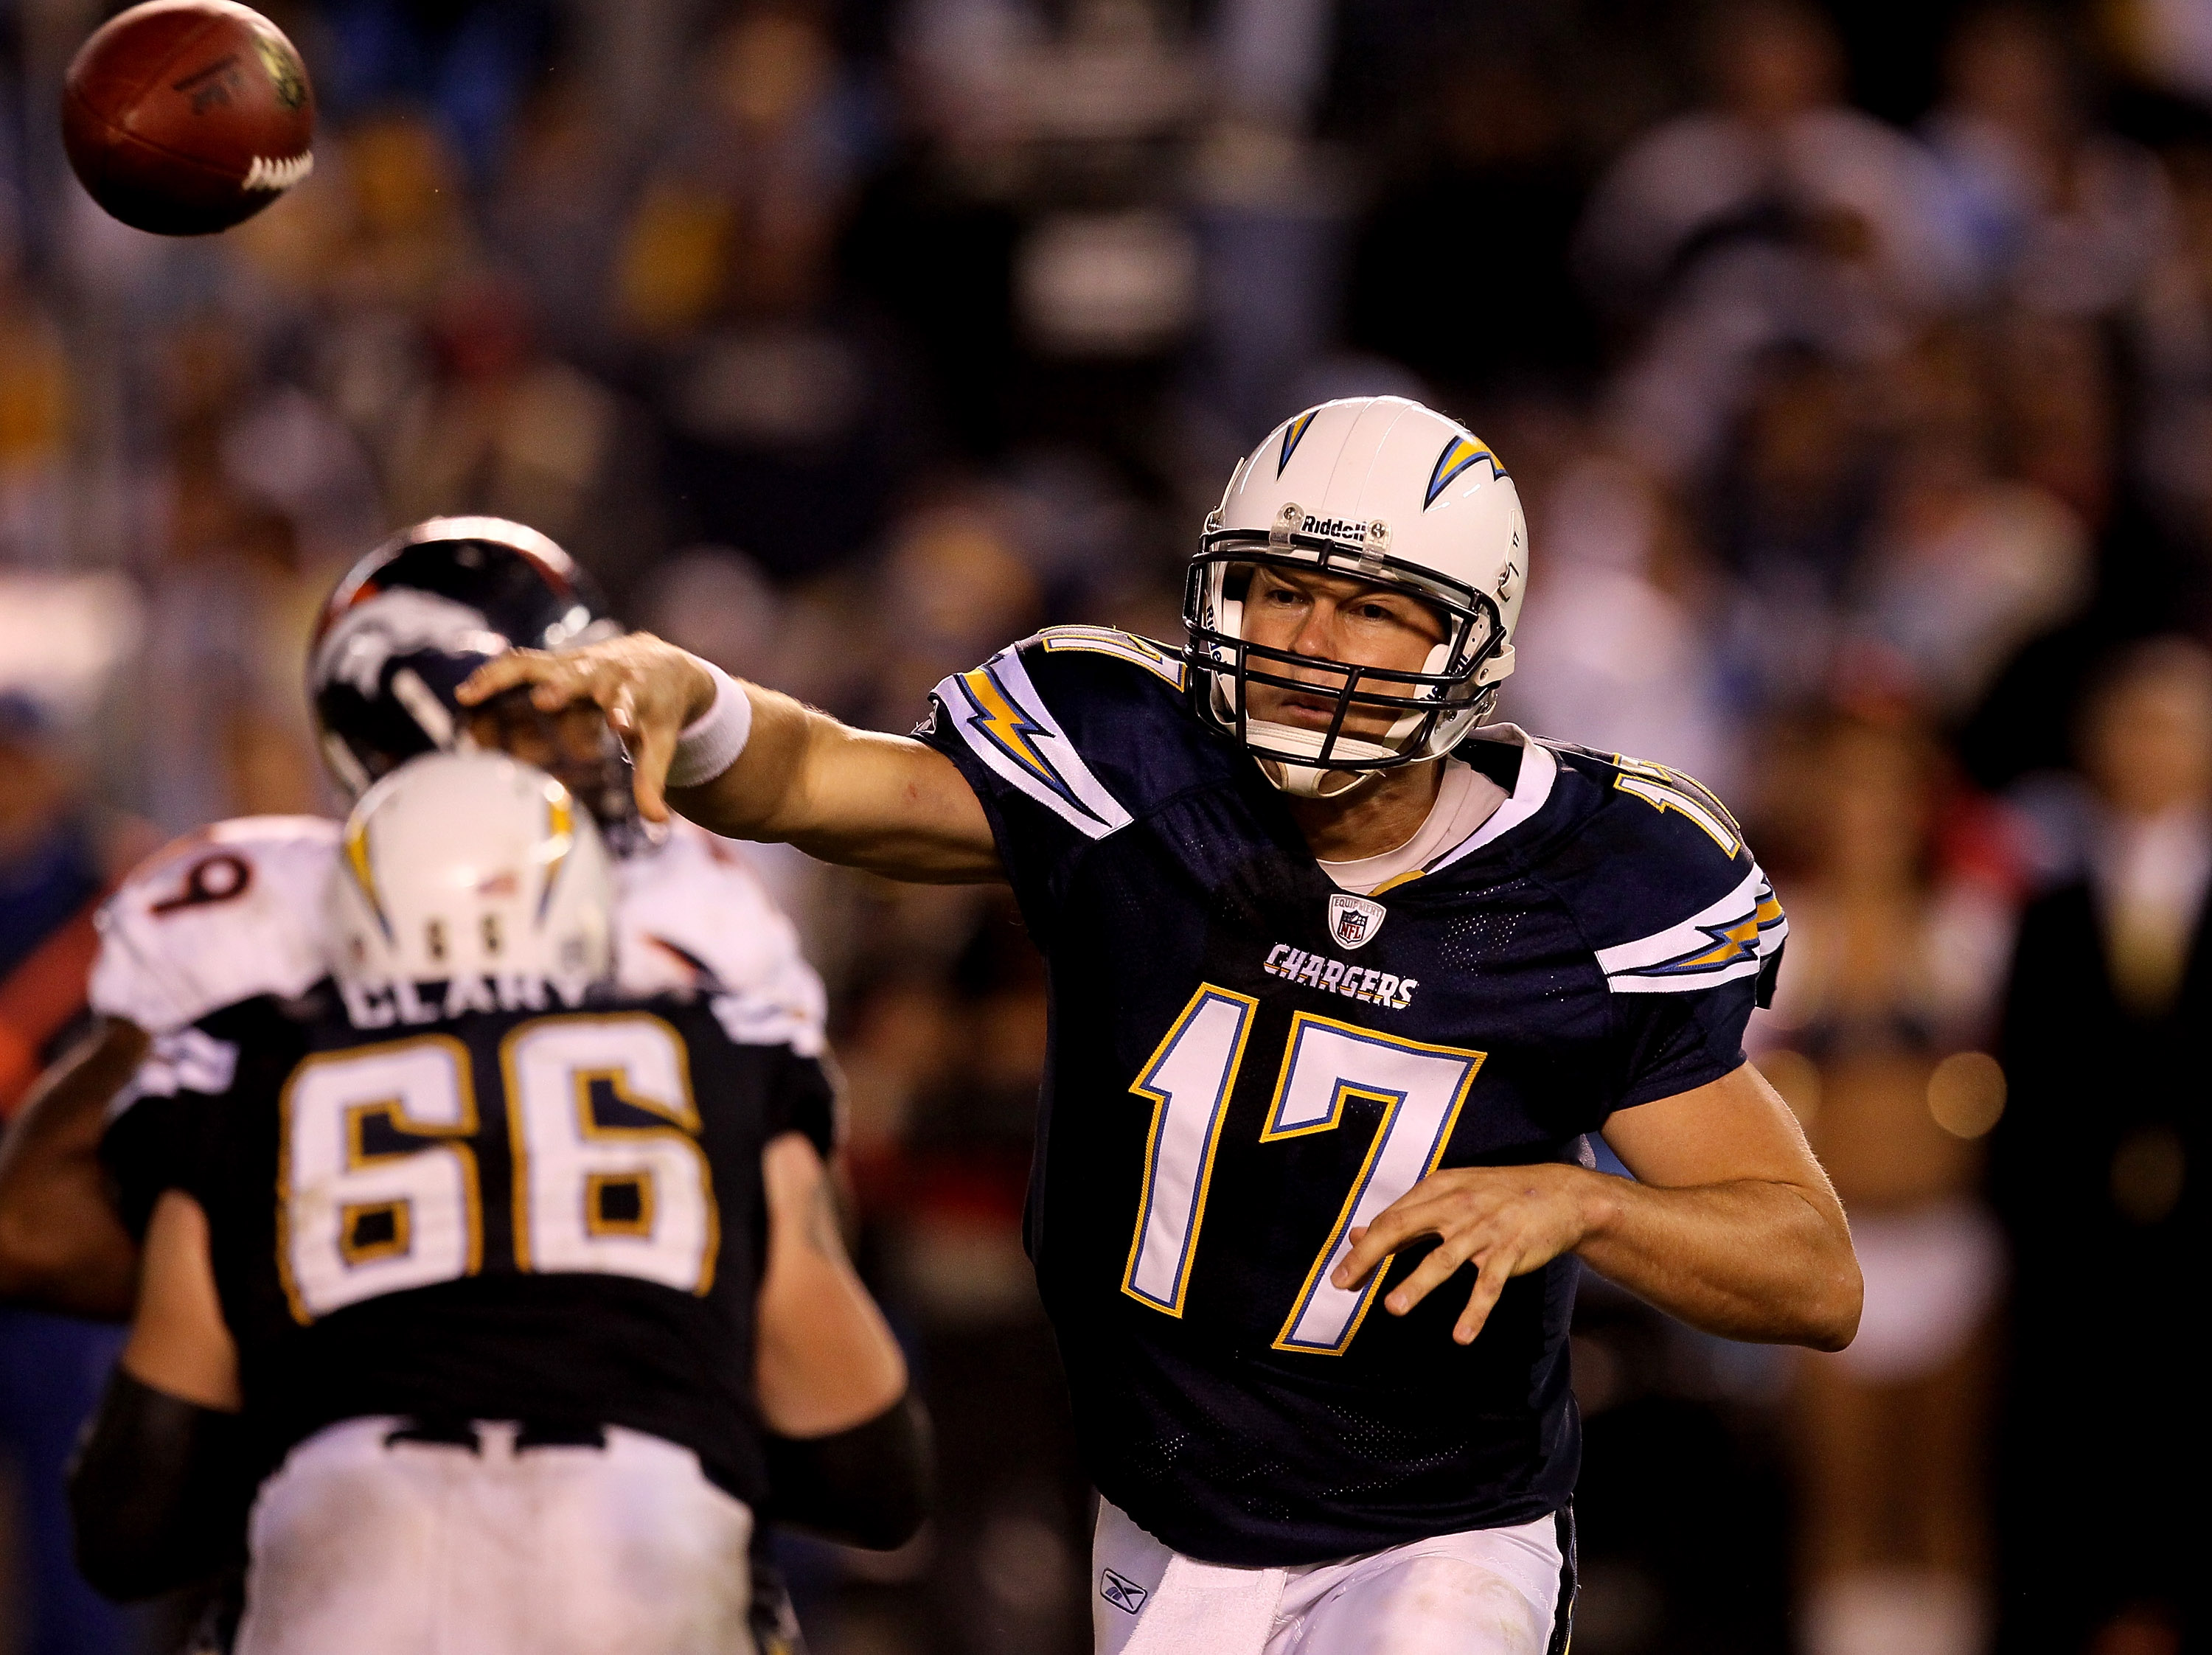 SAN DIEGO - NOVEMBER 22:  Quarterback Philip Rivers #17 of the San Diego Chargers throws a pass against the Denver Broncos at Qualcomm Stadium on November 22, 2010 in San Diego, California. The Chargers won 35-14.  (Photo by Stephen Dunn/Getty Images)